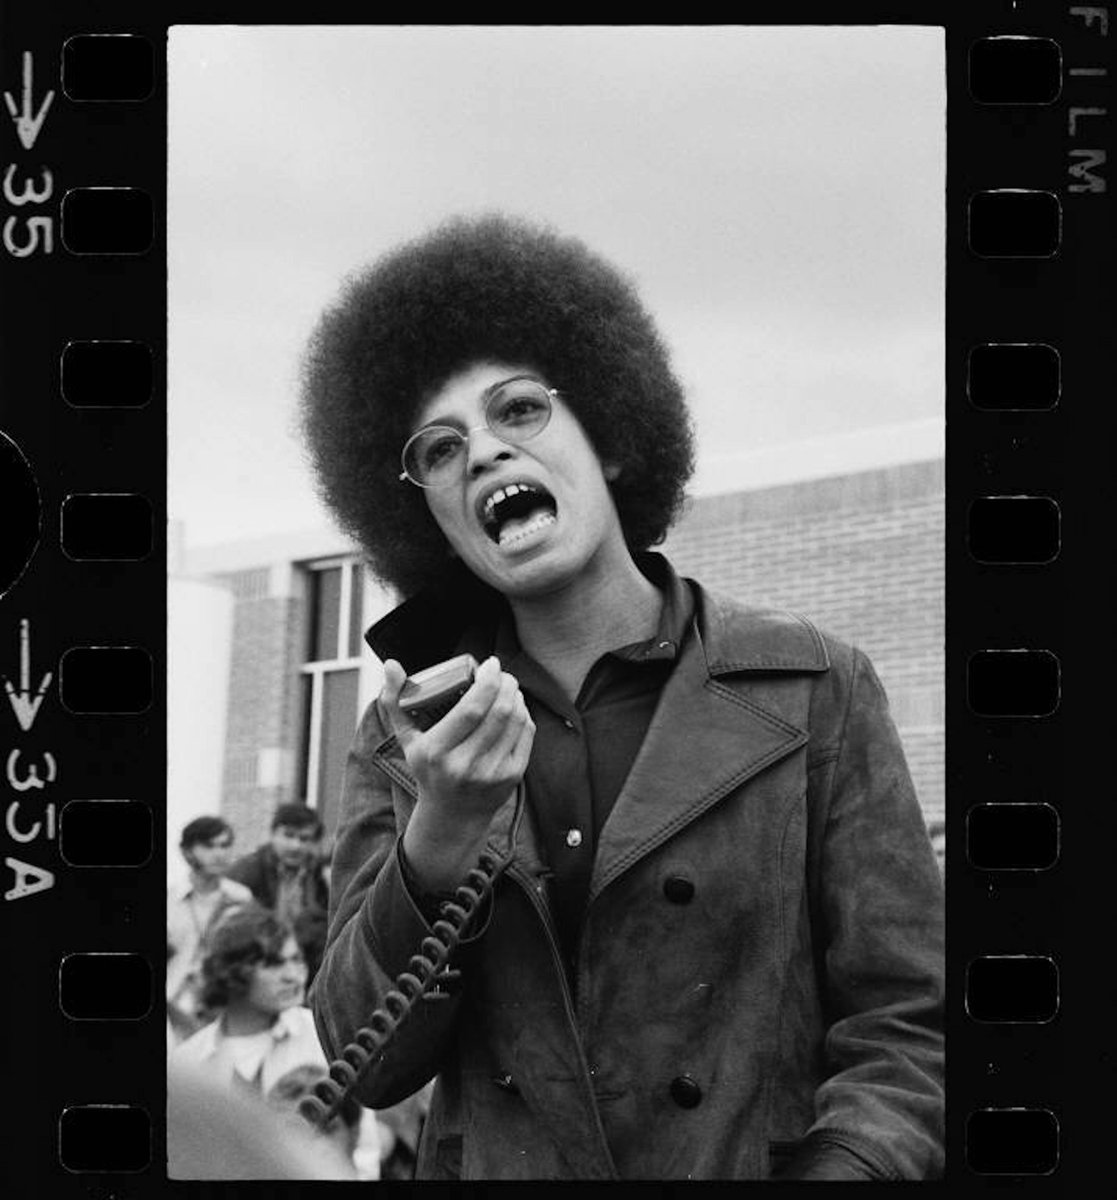 'If indeed all lives mattered, we would not need to emphatically proclaim that 'Black Lives Matter'' Angela Davis